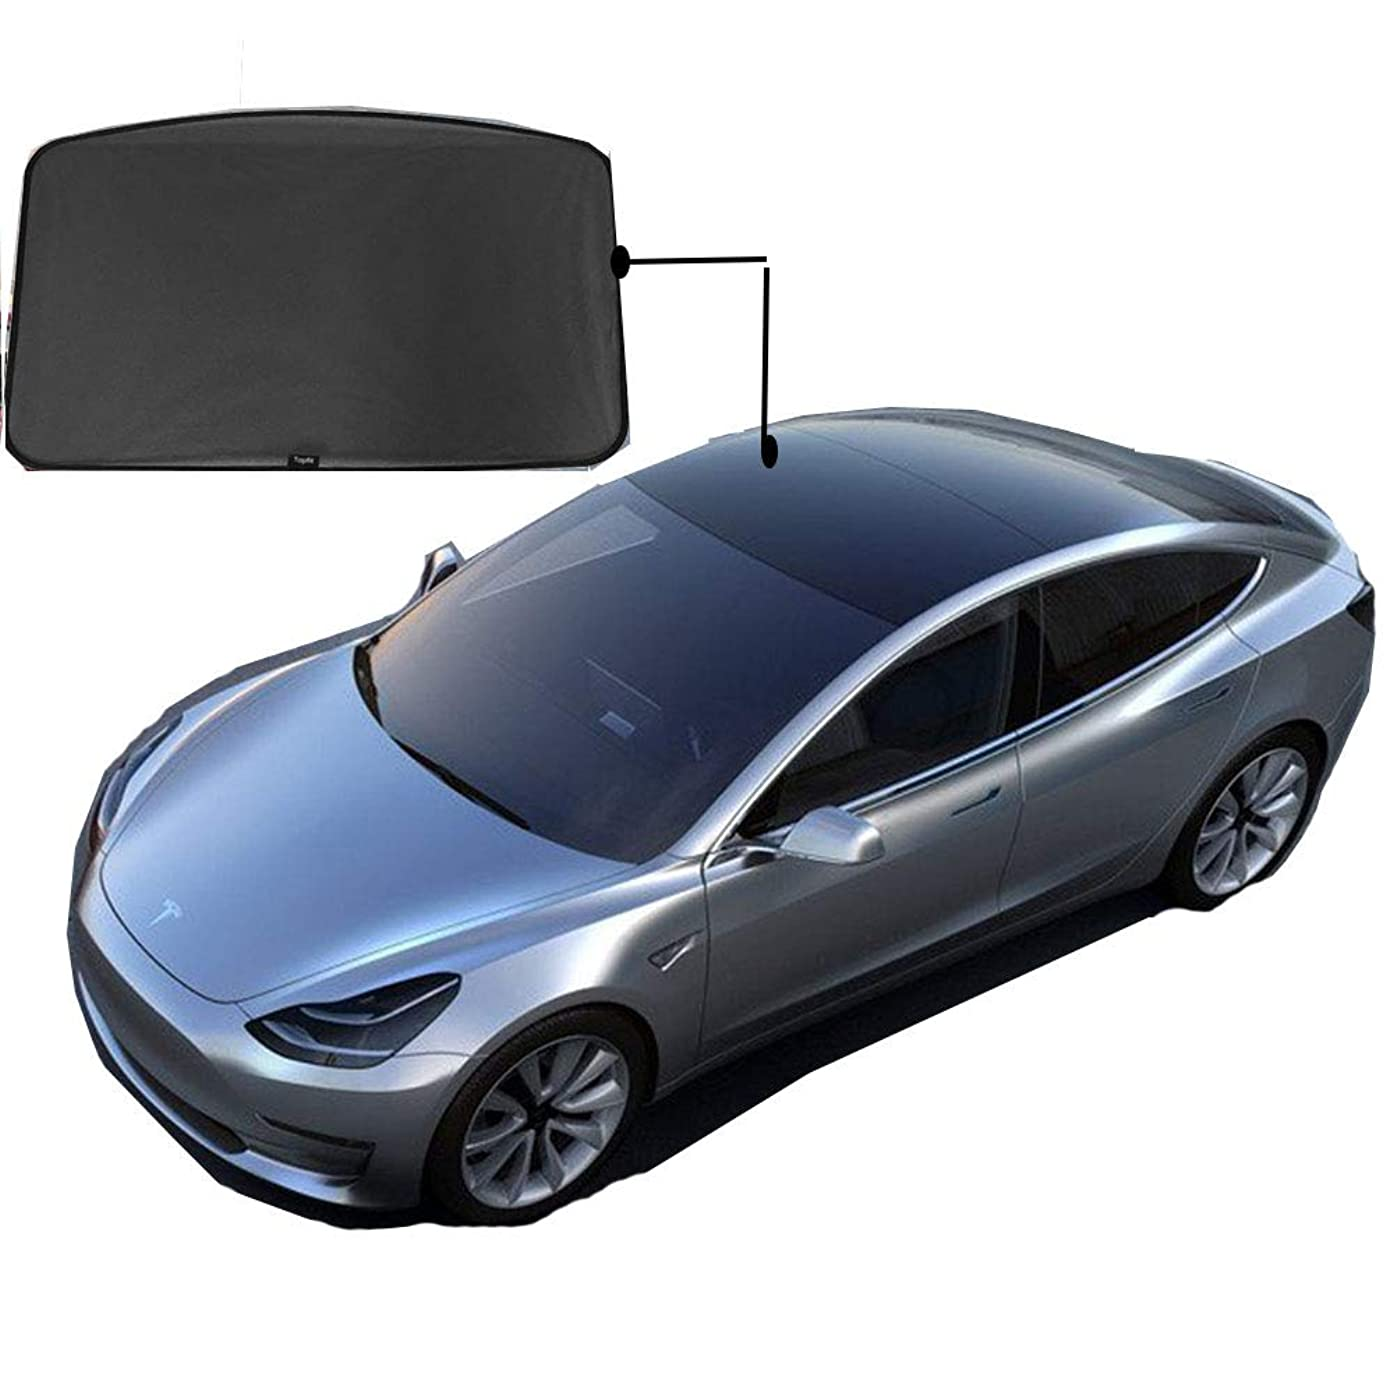 EVFIT Car Windows Sunshade Customize Tesla Model 3 Accessories